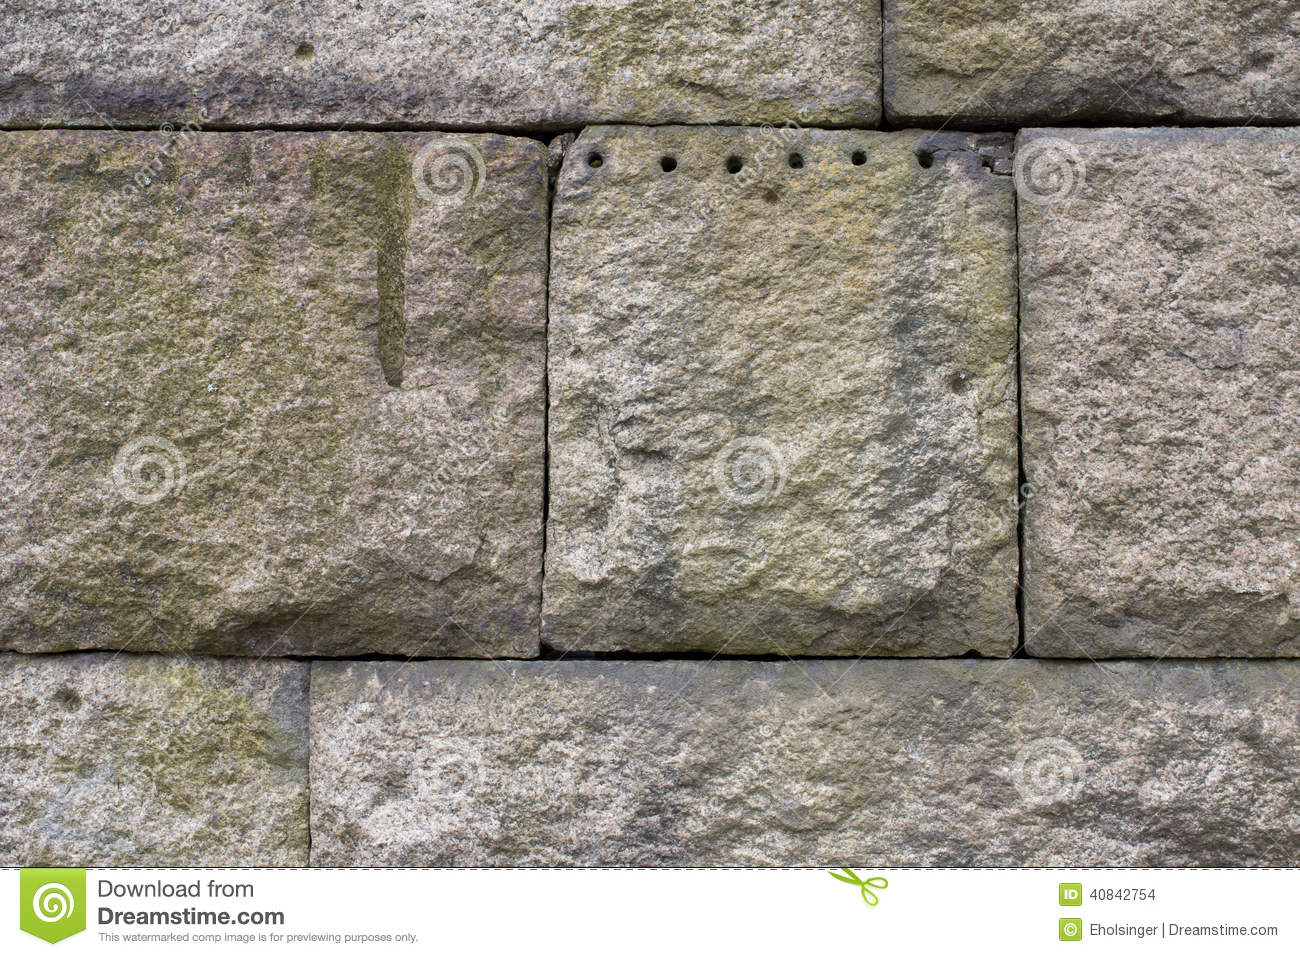 Extremely Large Stone Block : Granite stone block wall weathered with quarry marks